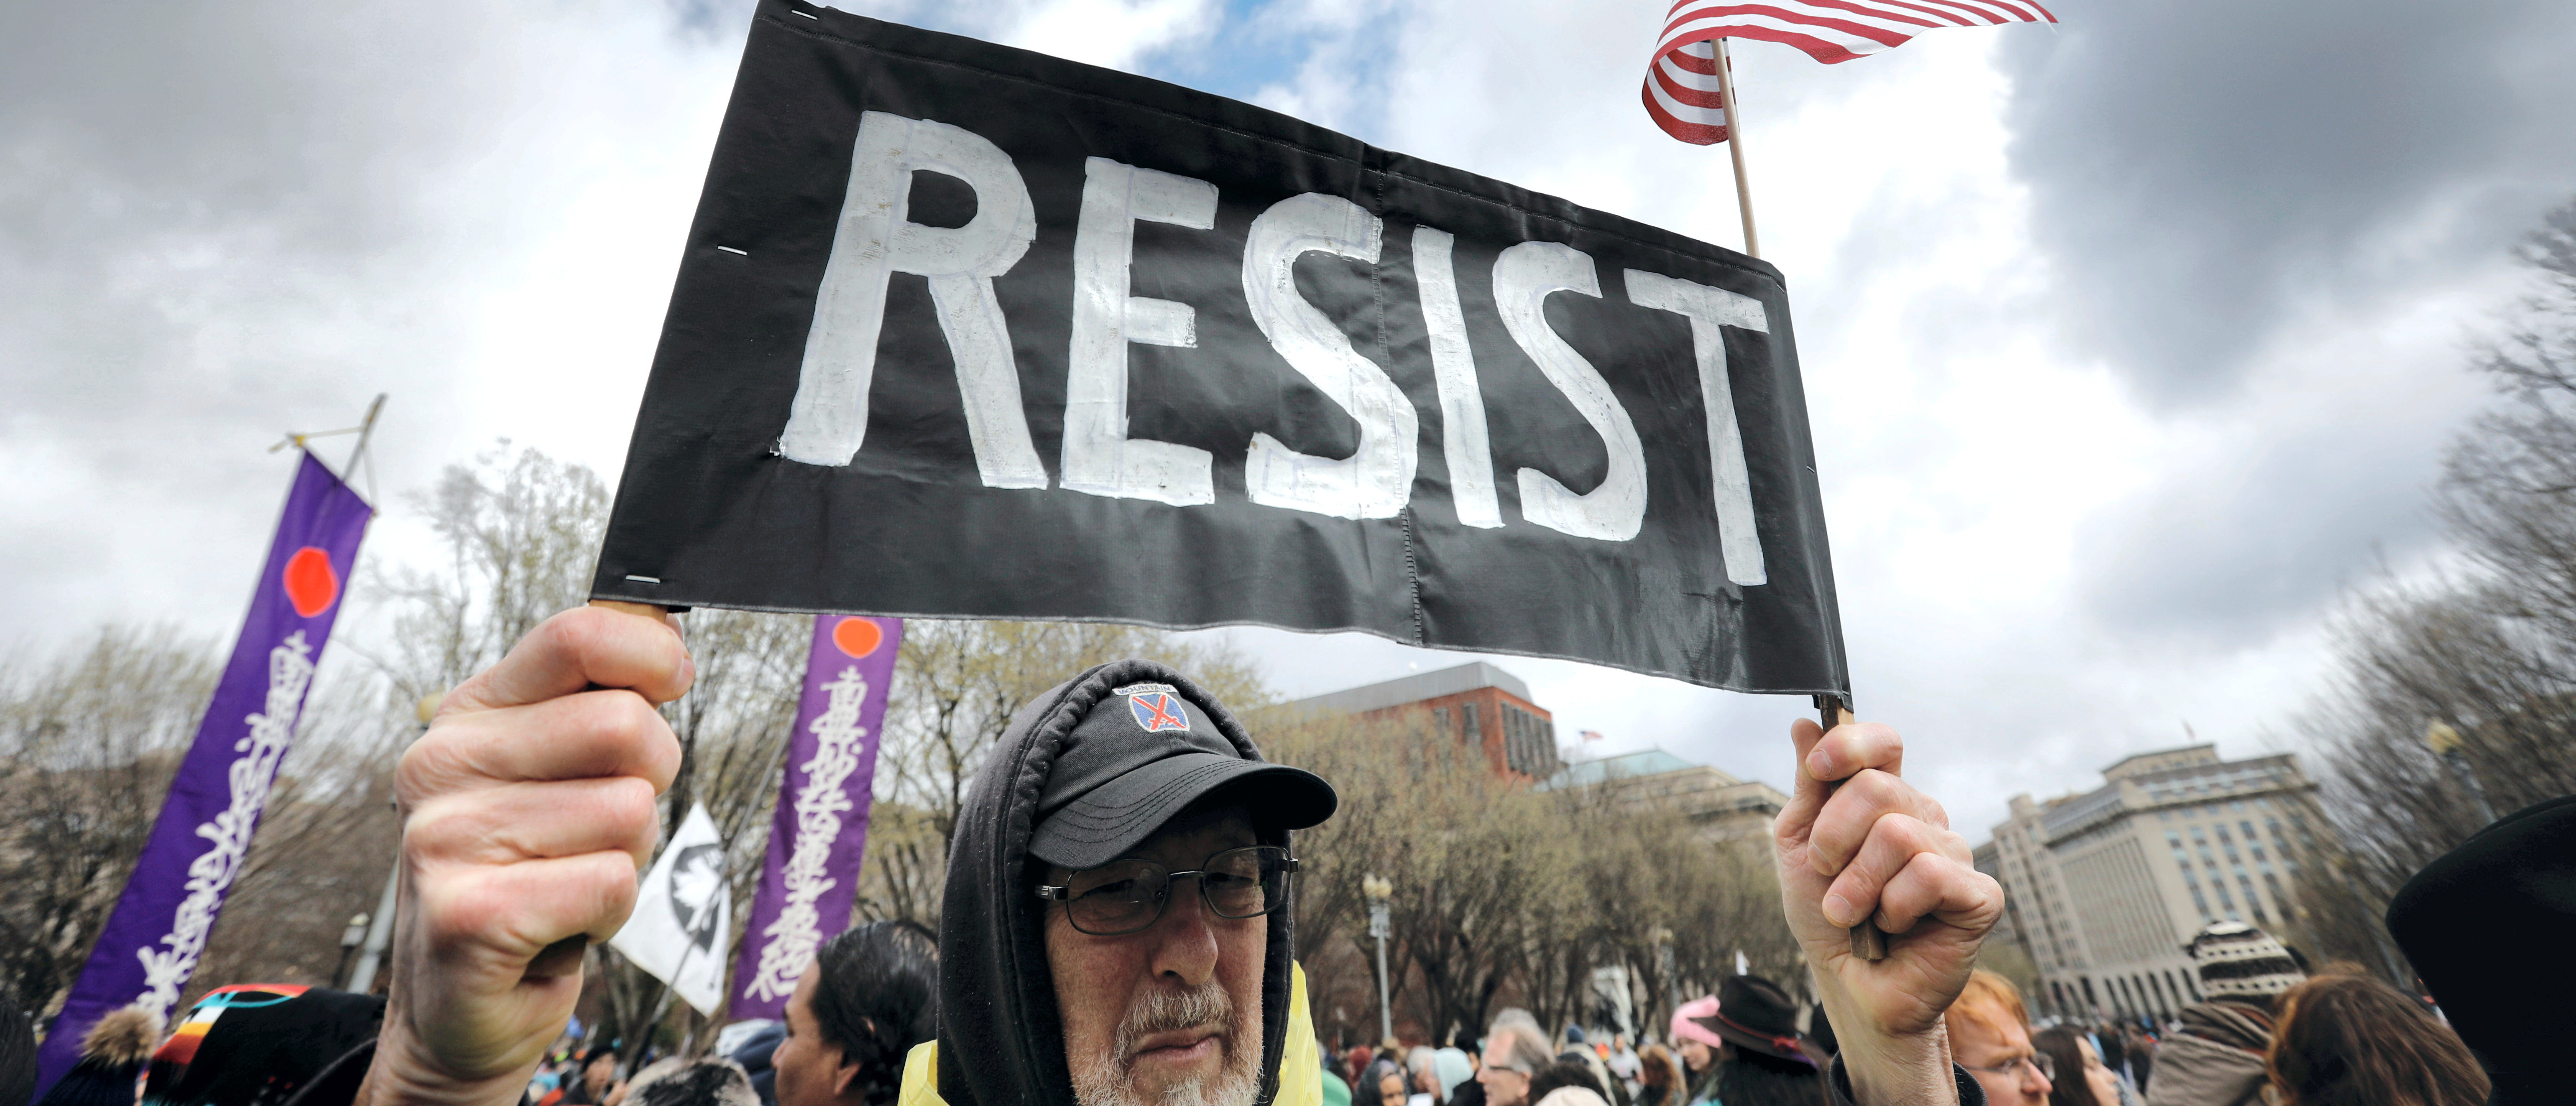 A protestor holds a Resist sign as indigenous activists and supporters hold a protest march and rally in opposition to the Dakota Access and Keystone XL pipelines in Washington, U.S., March 10, 2017. REUTERS/Kevin Lamarque - RC19F0C22C50